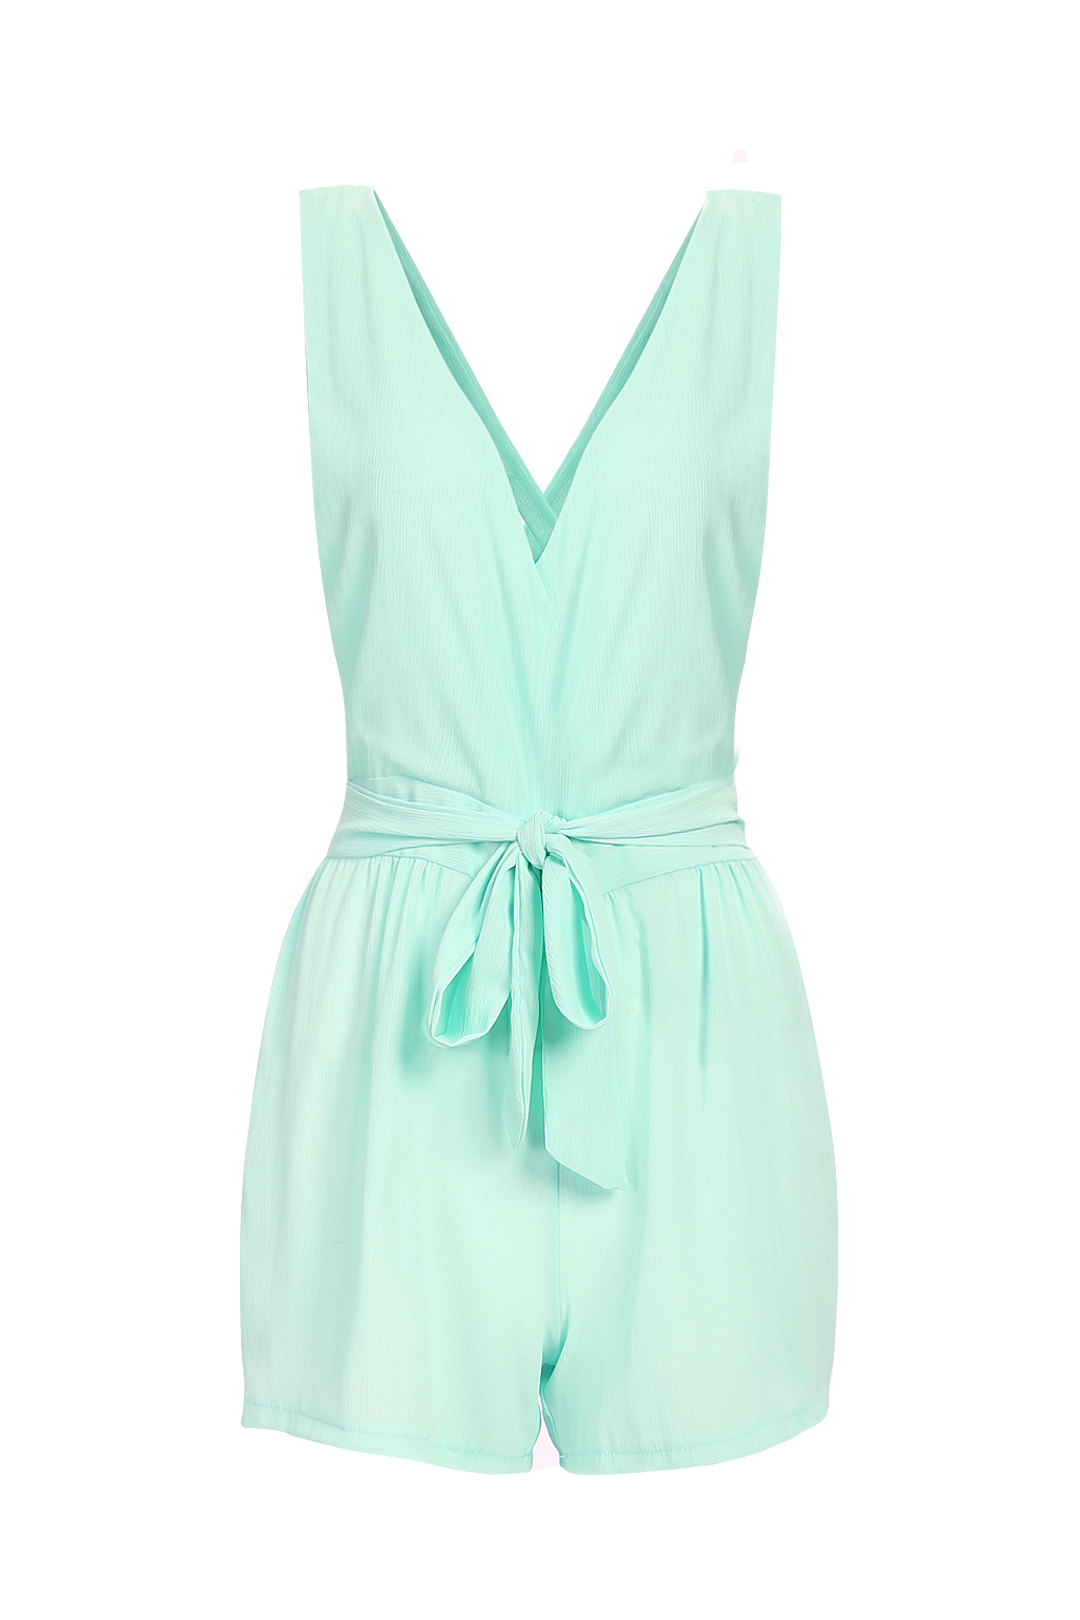 Mint Semi-sheer Plunge V-neck Self-tie Playsuit цена